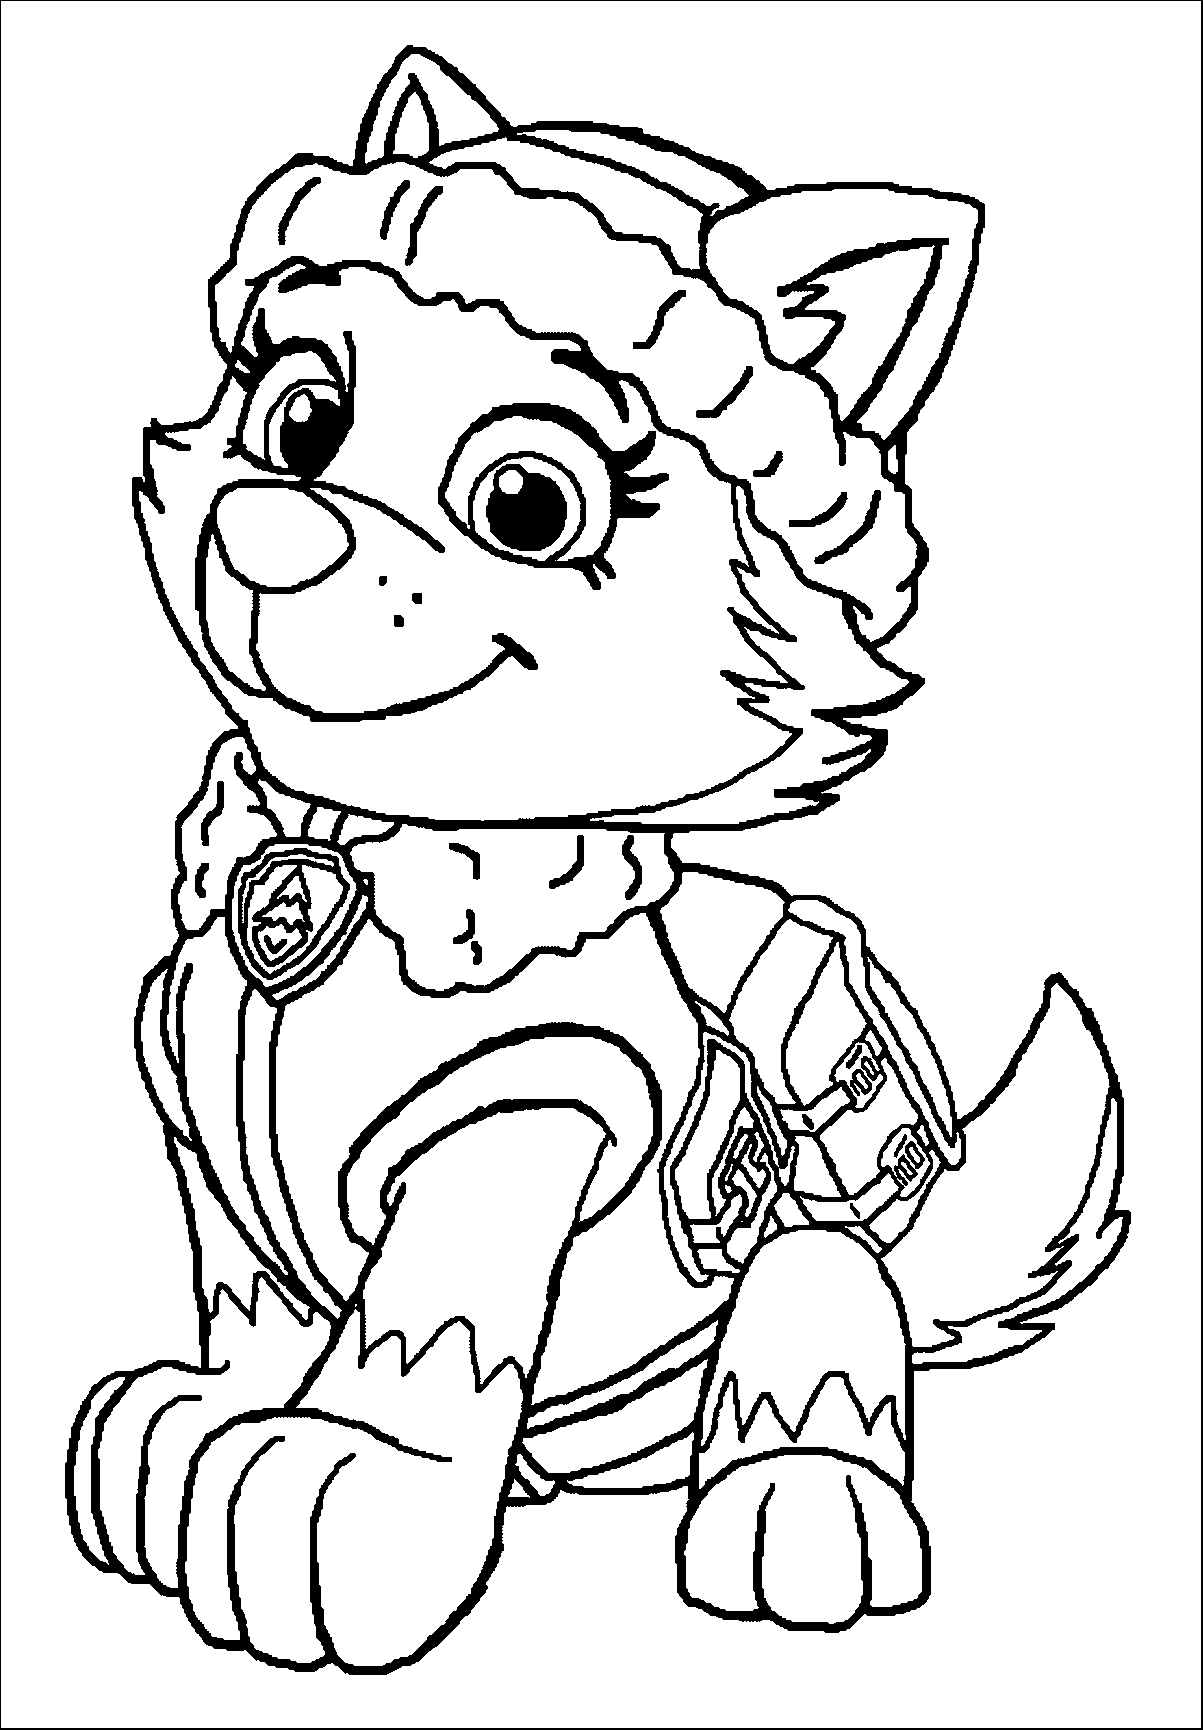 coloring pages of paw patrol paw patrol coloring pages printable free coloring sheets of paw coloring pages patrol